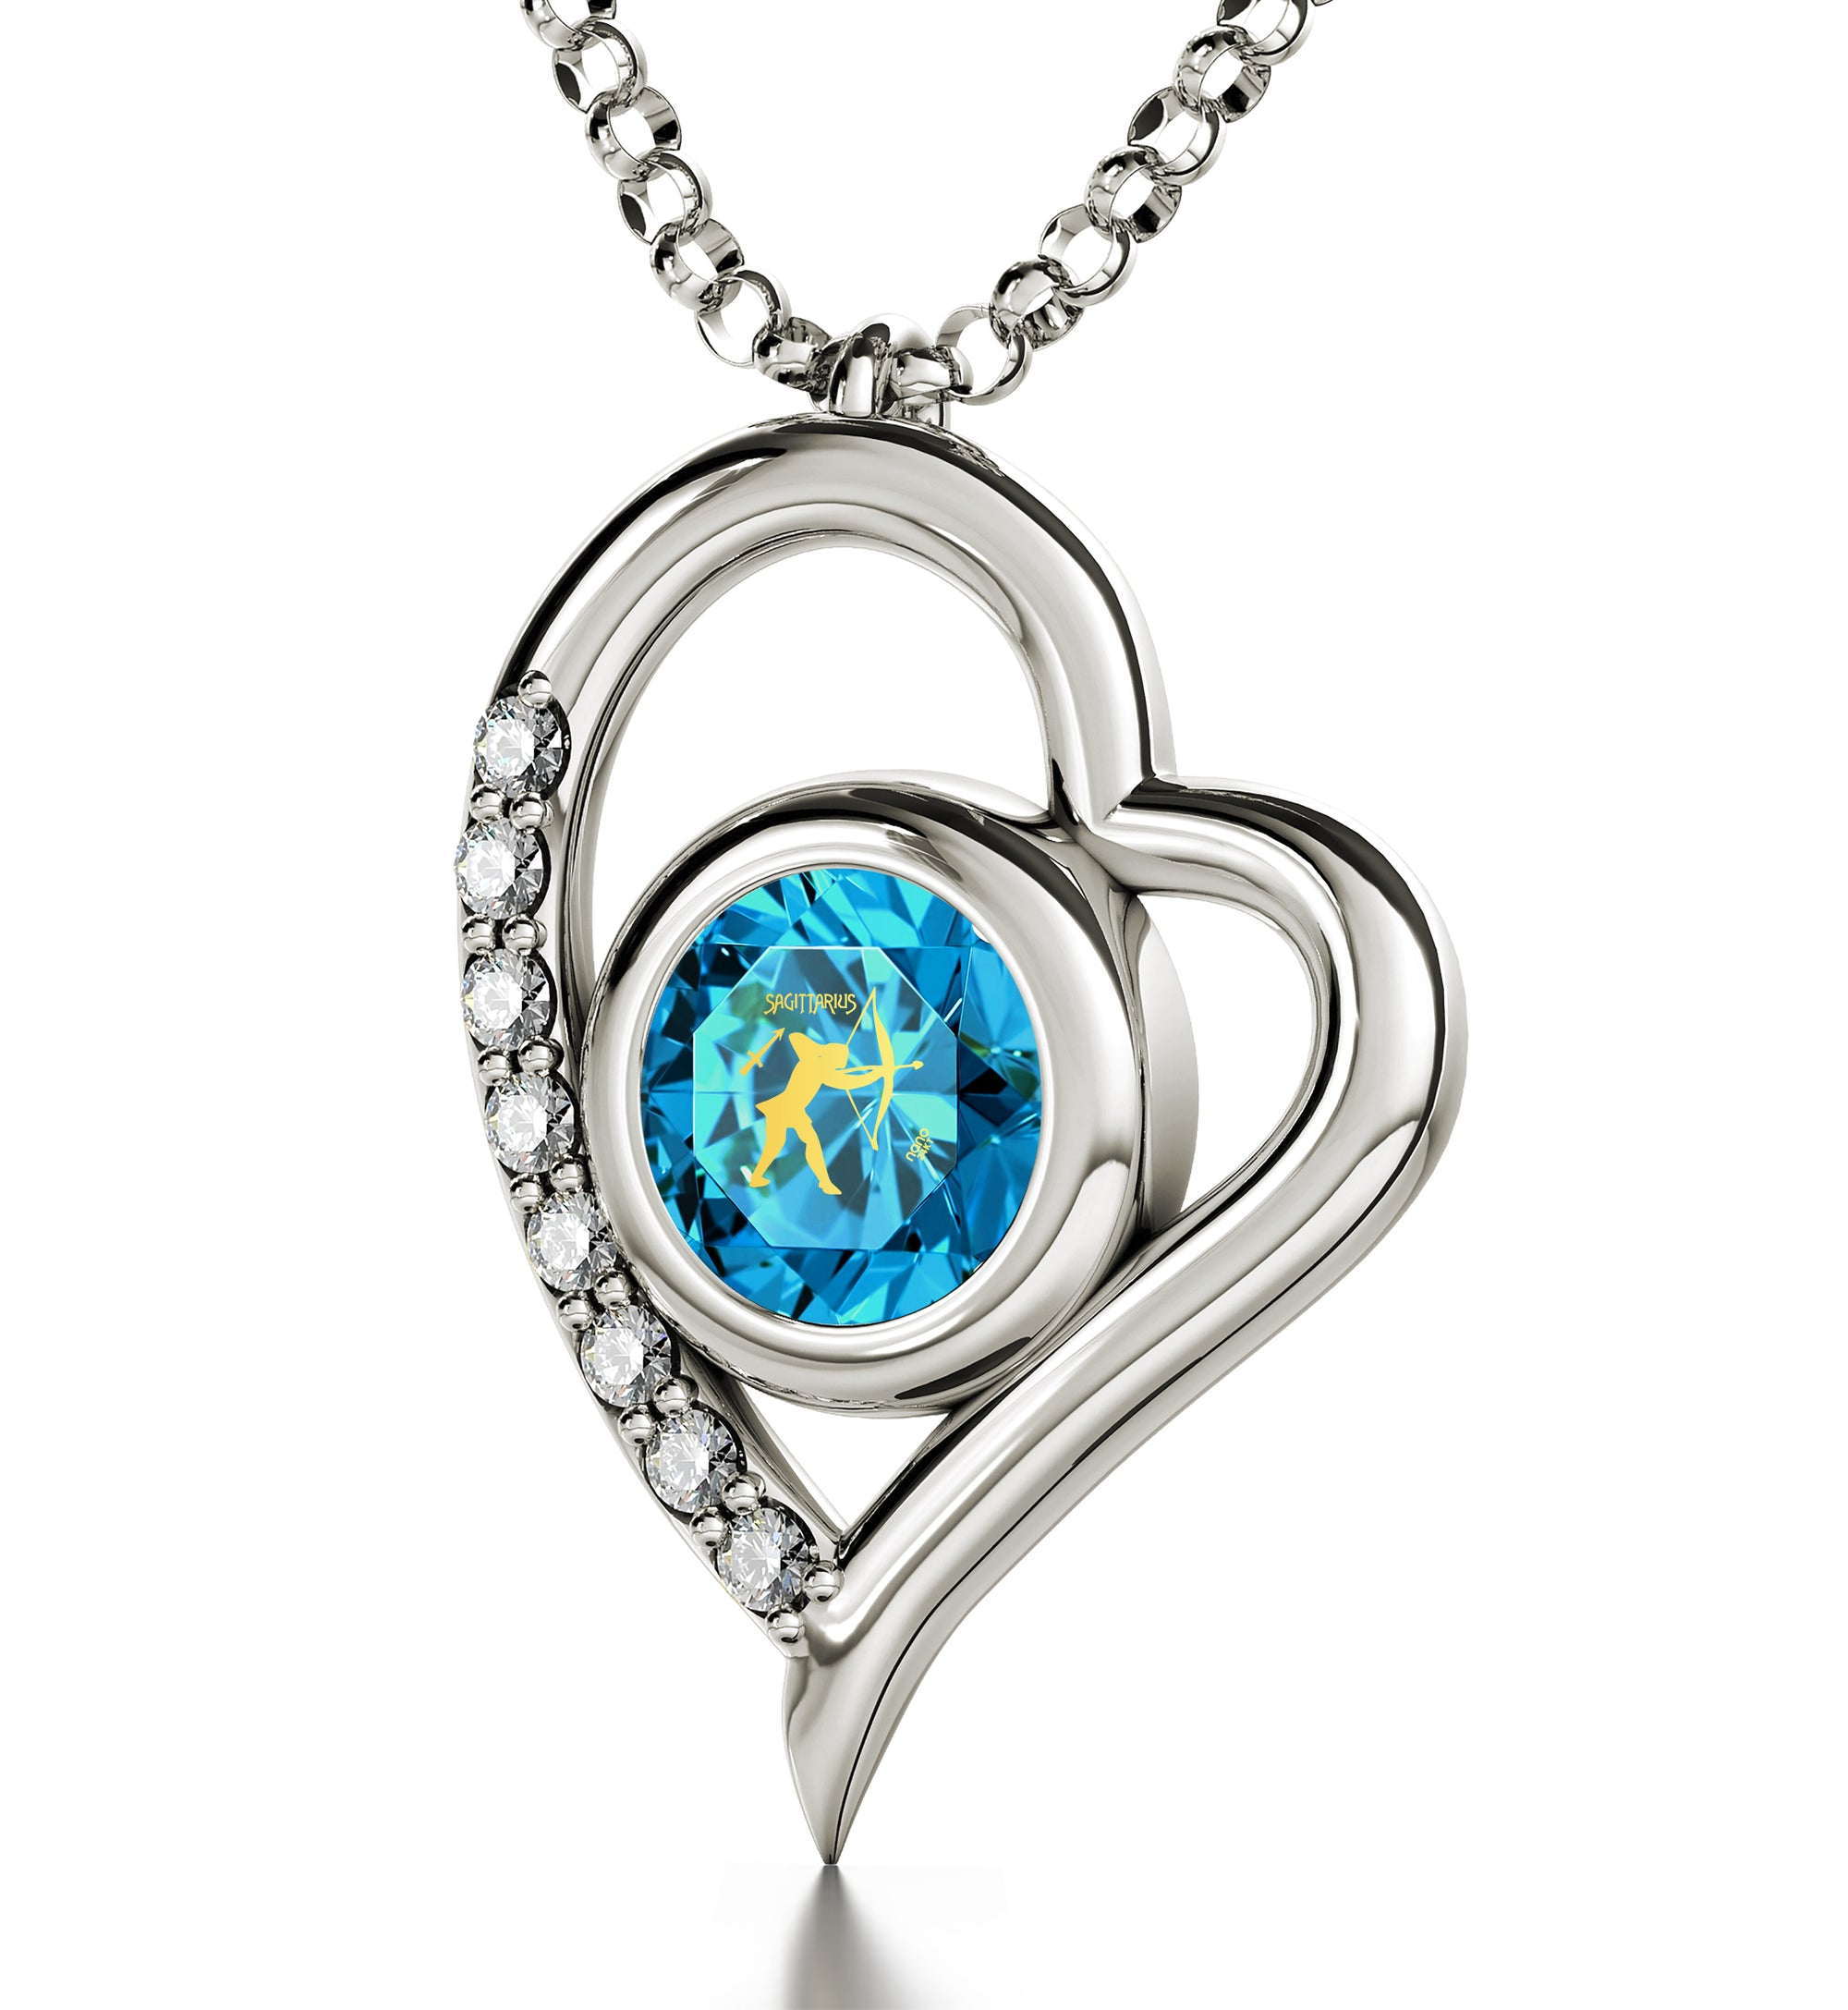 925 Sterling Silver Sagittarius Necklace Zodiac Heart Pendant 24k Gold Inscribed on Crystal - NanoStyle Jewelry